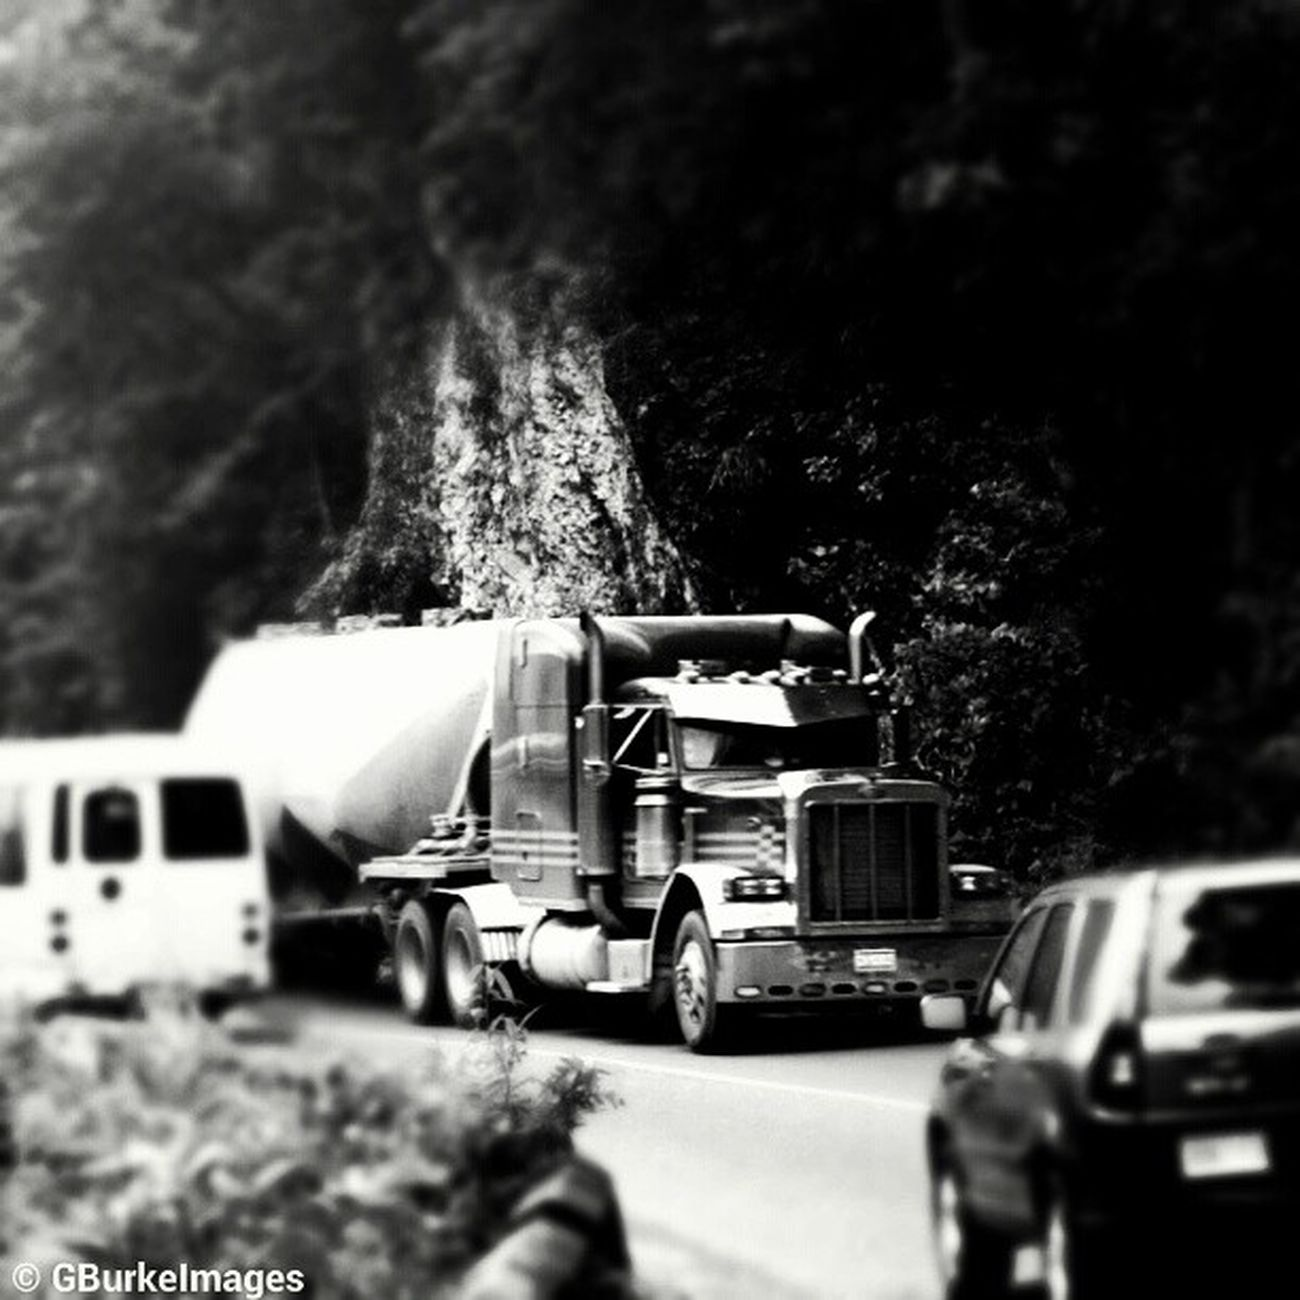 Ode to Stephen King: Demon Truck in the Rio Cobre Gorge, Jamaica. Driving this narrow, winding, single lane road is not for the faint of heart! Stephenking RioCobre Jamaica Jamaicalife InstagramJamaica streetwalker_069 streetphotography streetphotography_bw ampt_community squaready streetwalker_069 monstertruck demontruck